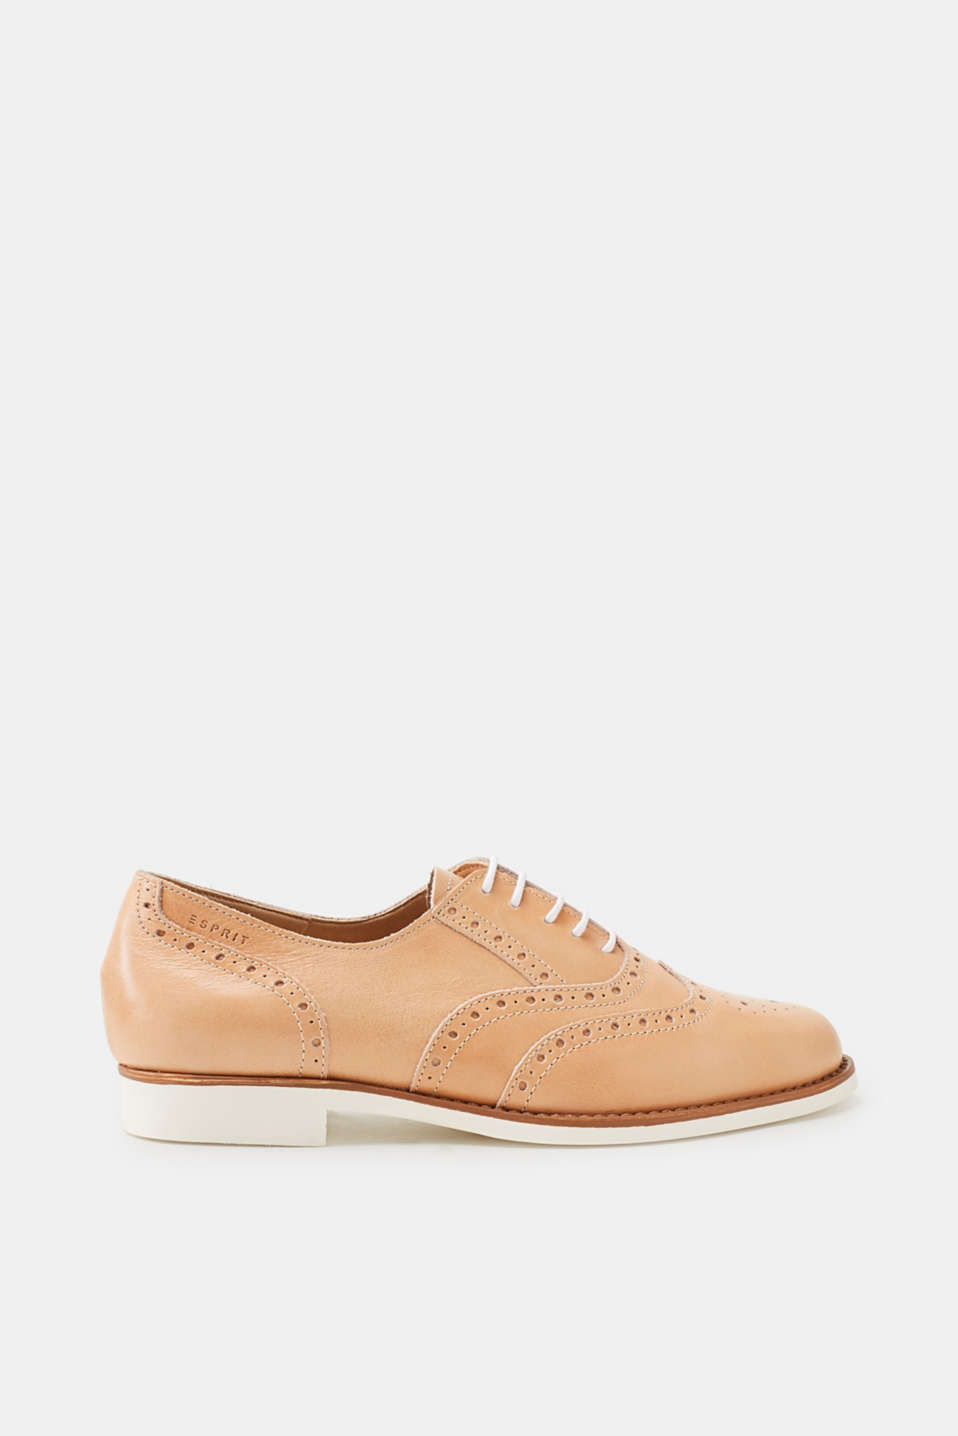 Esprit - Leather lace-up shoes, white rubber sole